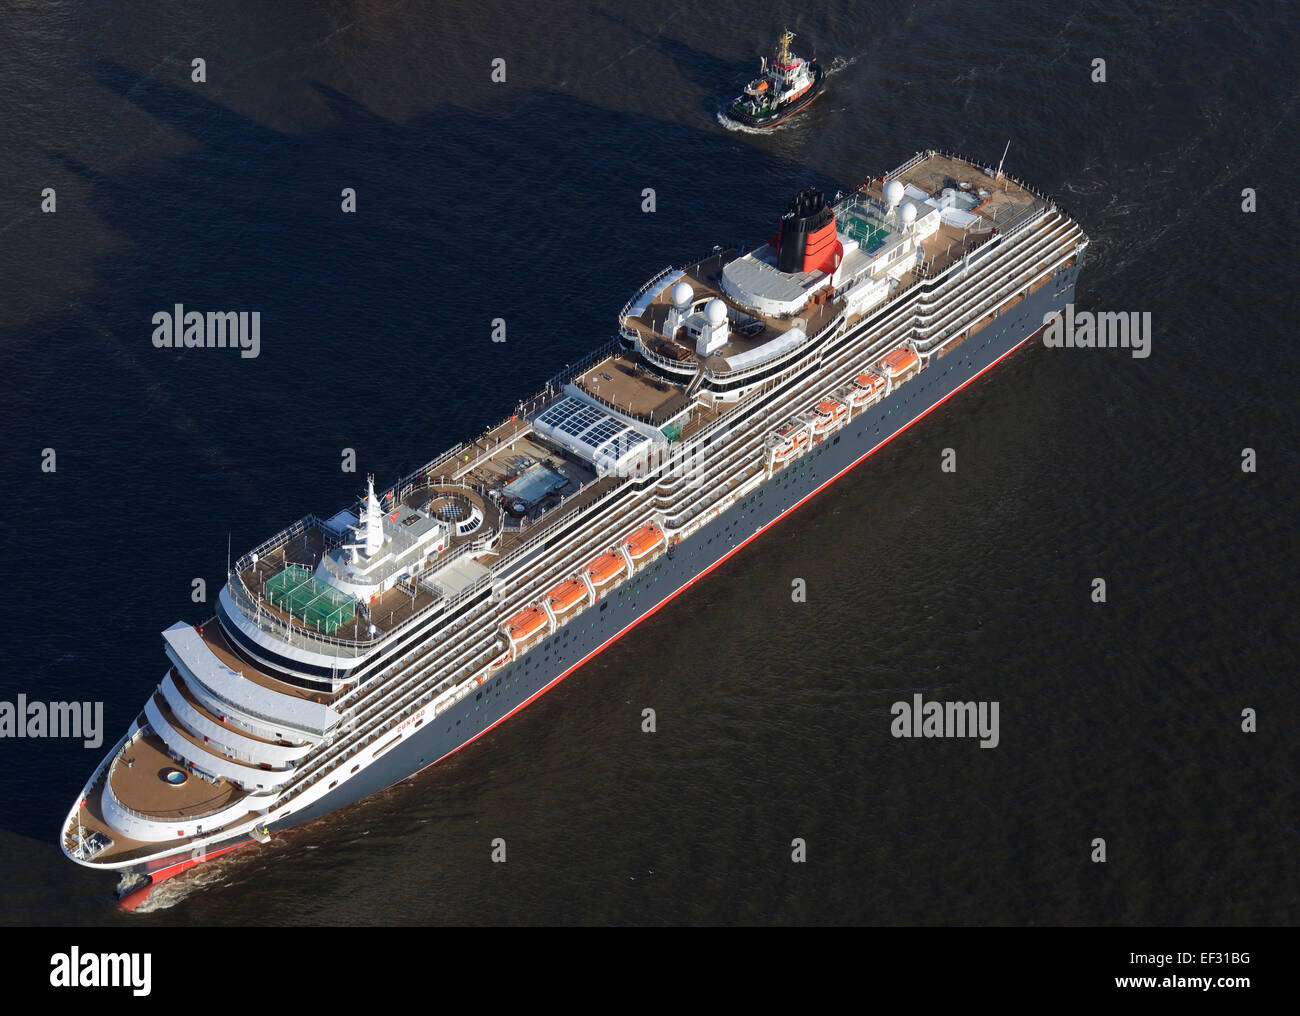 Cruise ship Queen Victoria, accompanied by a small tugboat, Hamburg, Germany - Stock Image